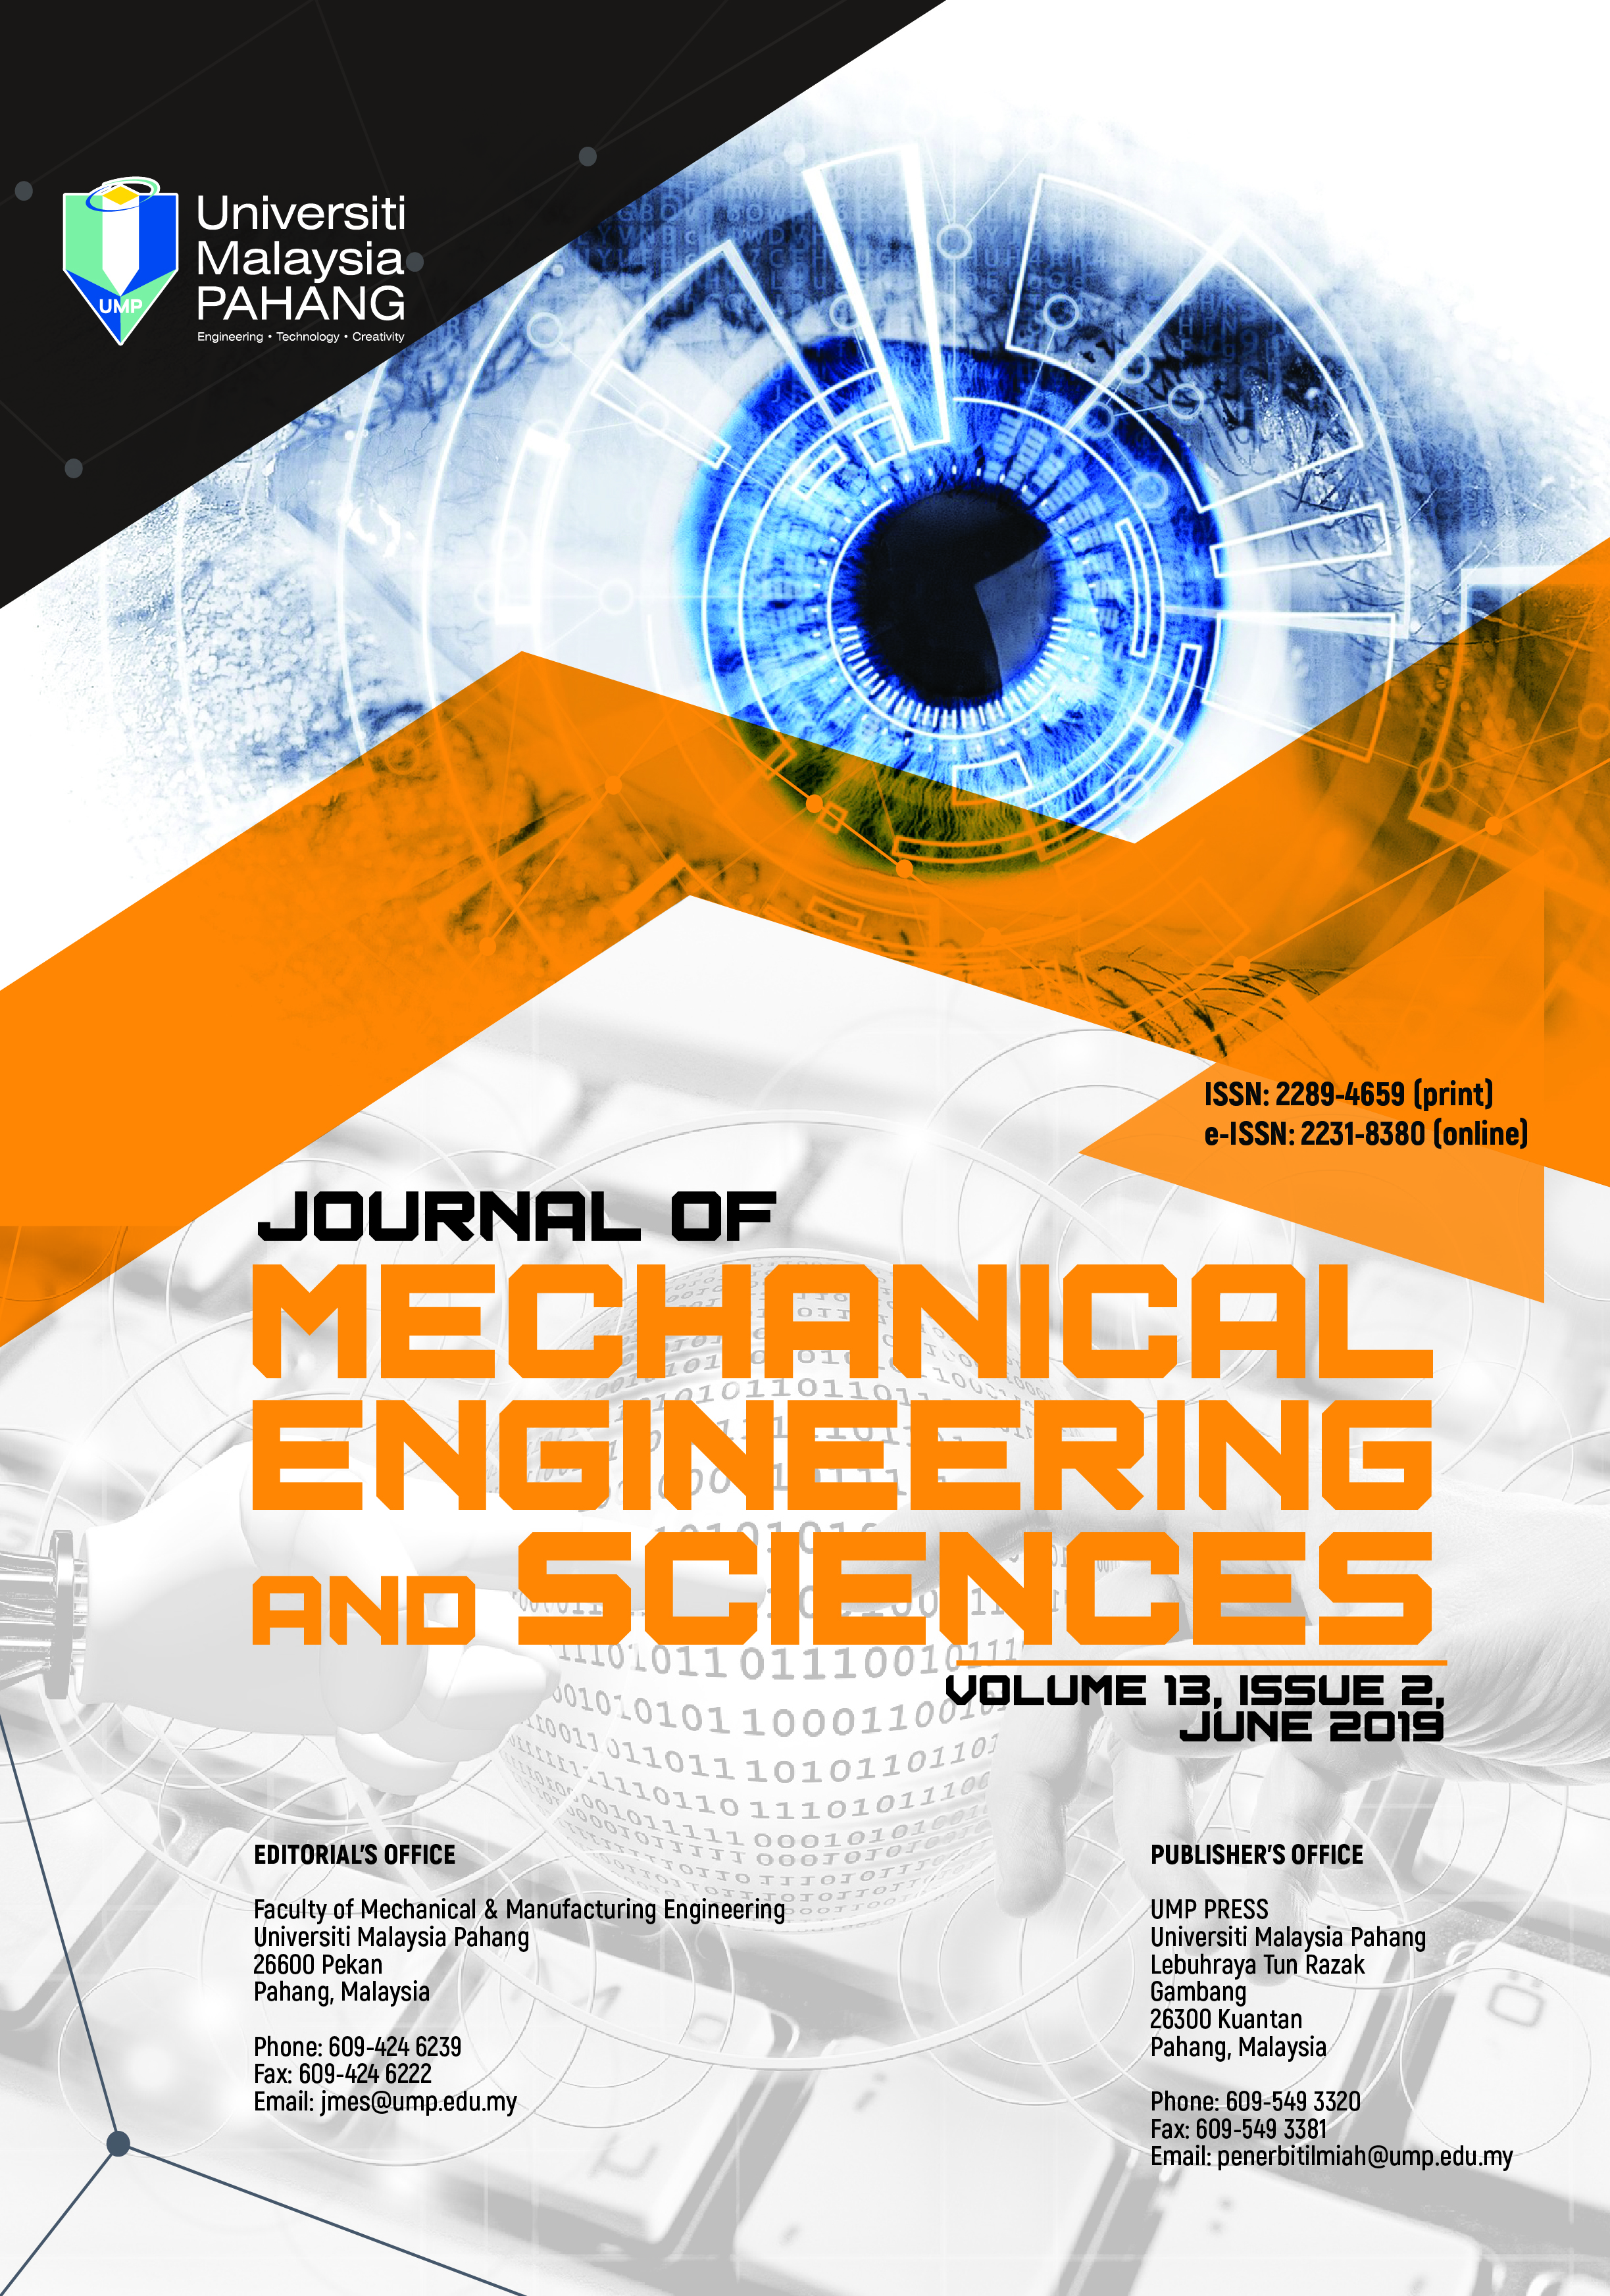 Journal of Mechanical Engineering and Sciences